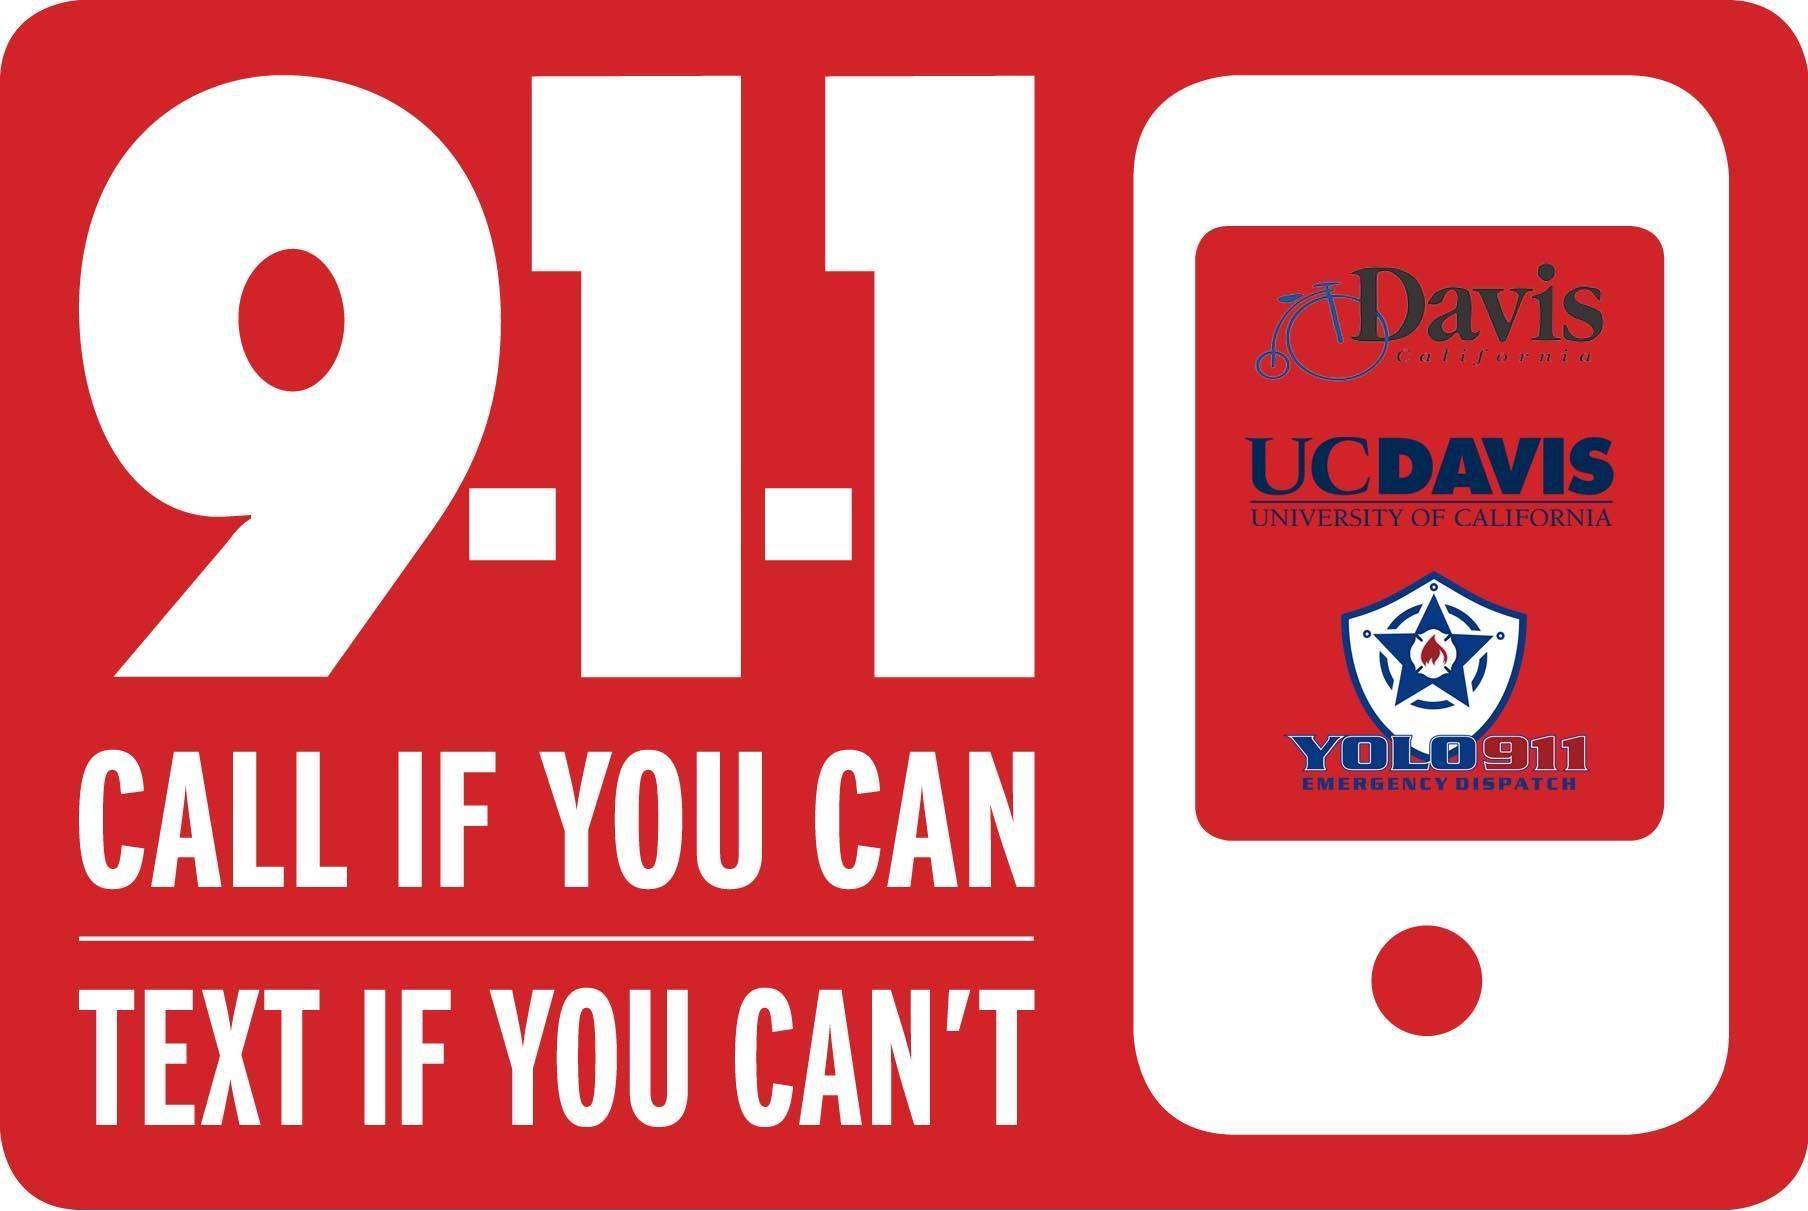 yolo county text 911 graphic 2018